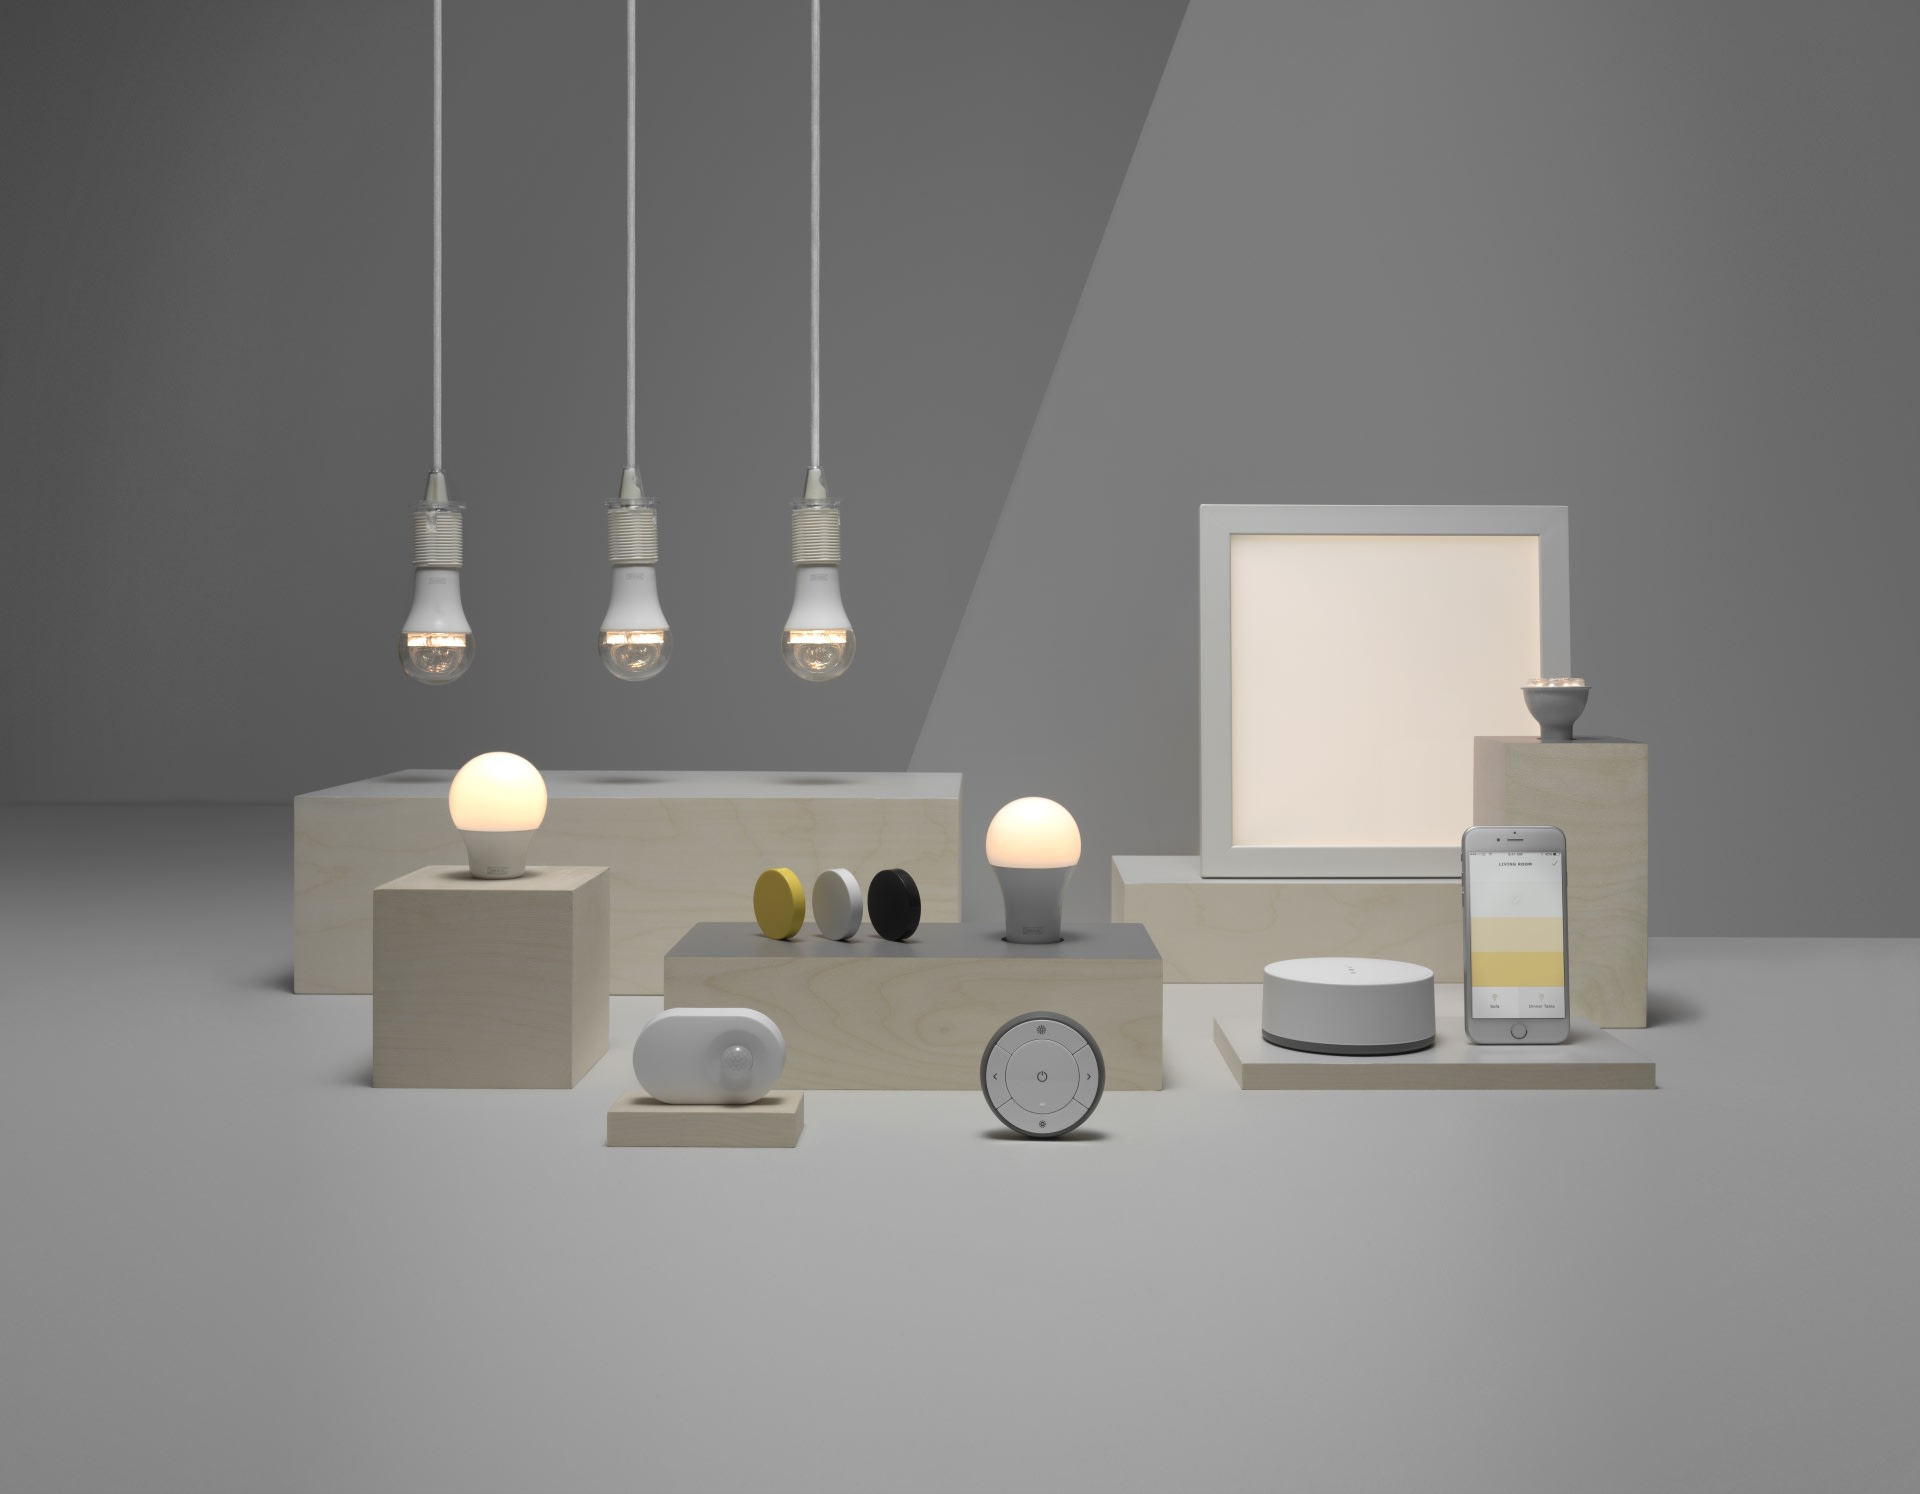 Ikea S Affordable Smart Lights Will Dim With Your Voice